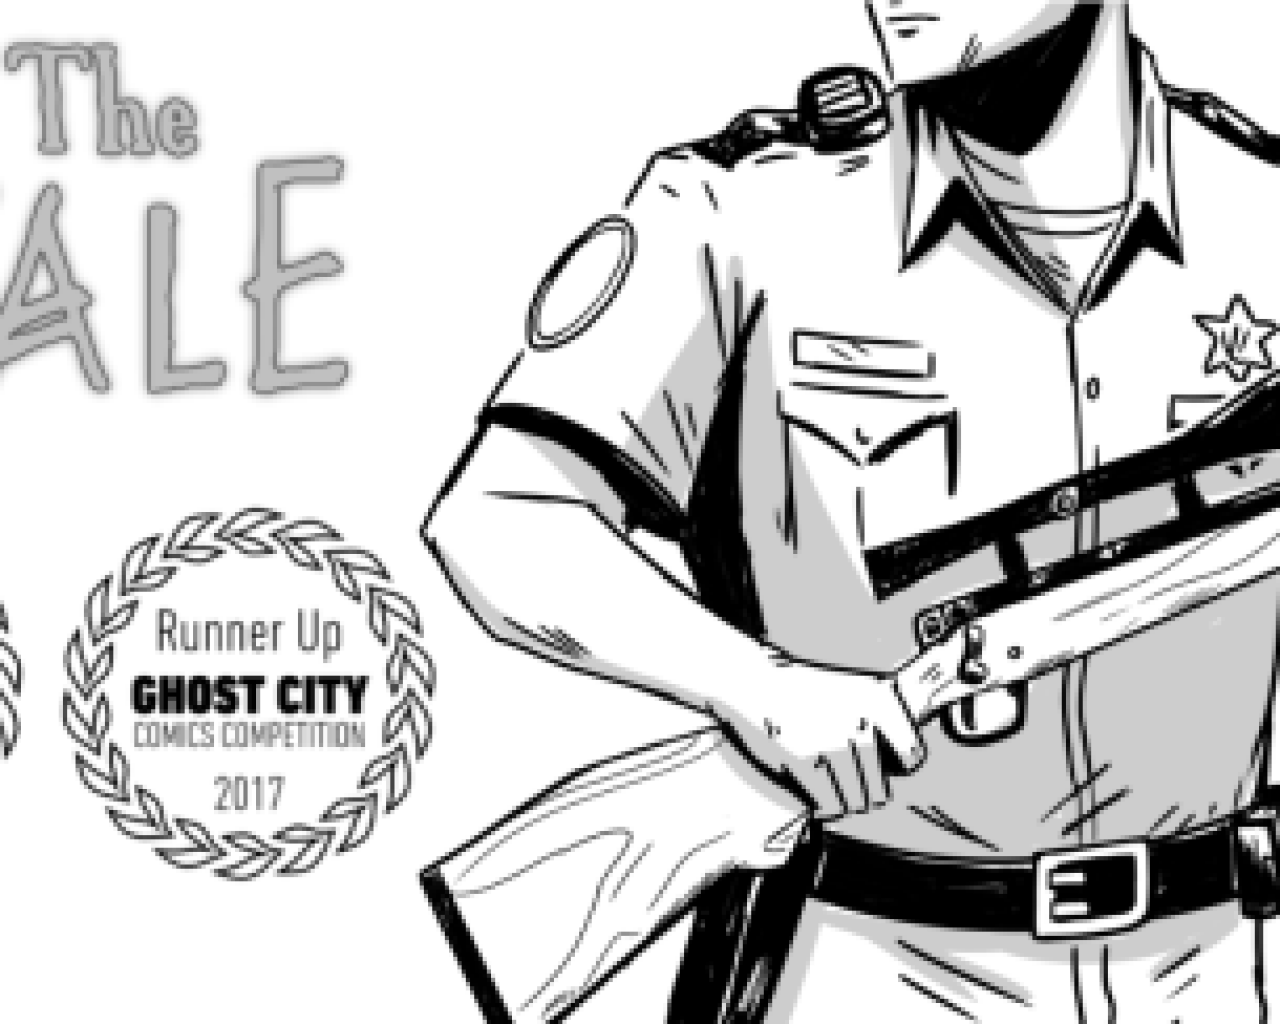 Poster Image for The Pale